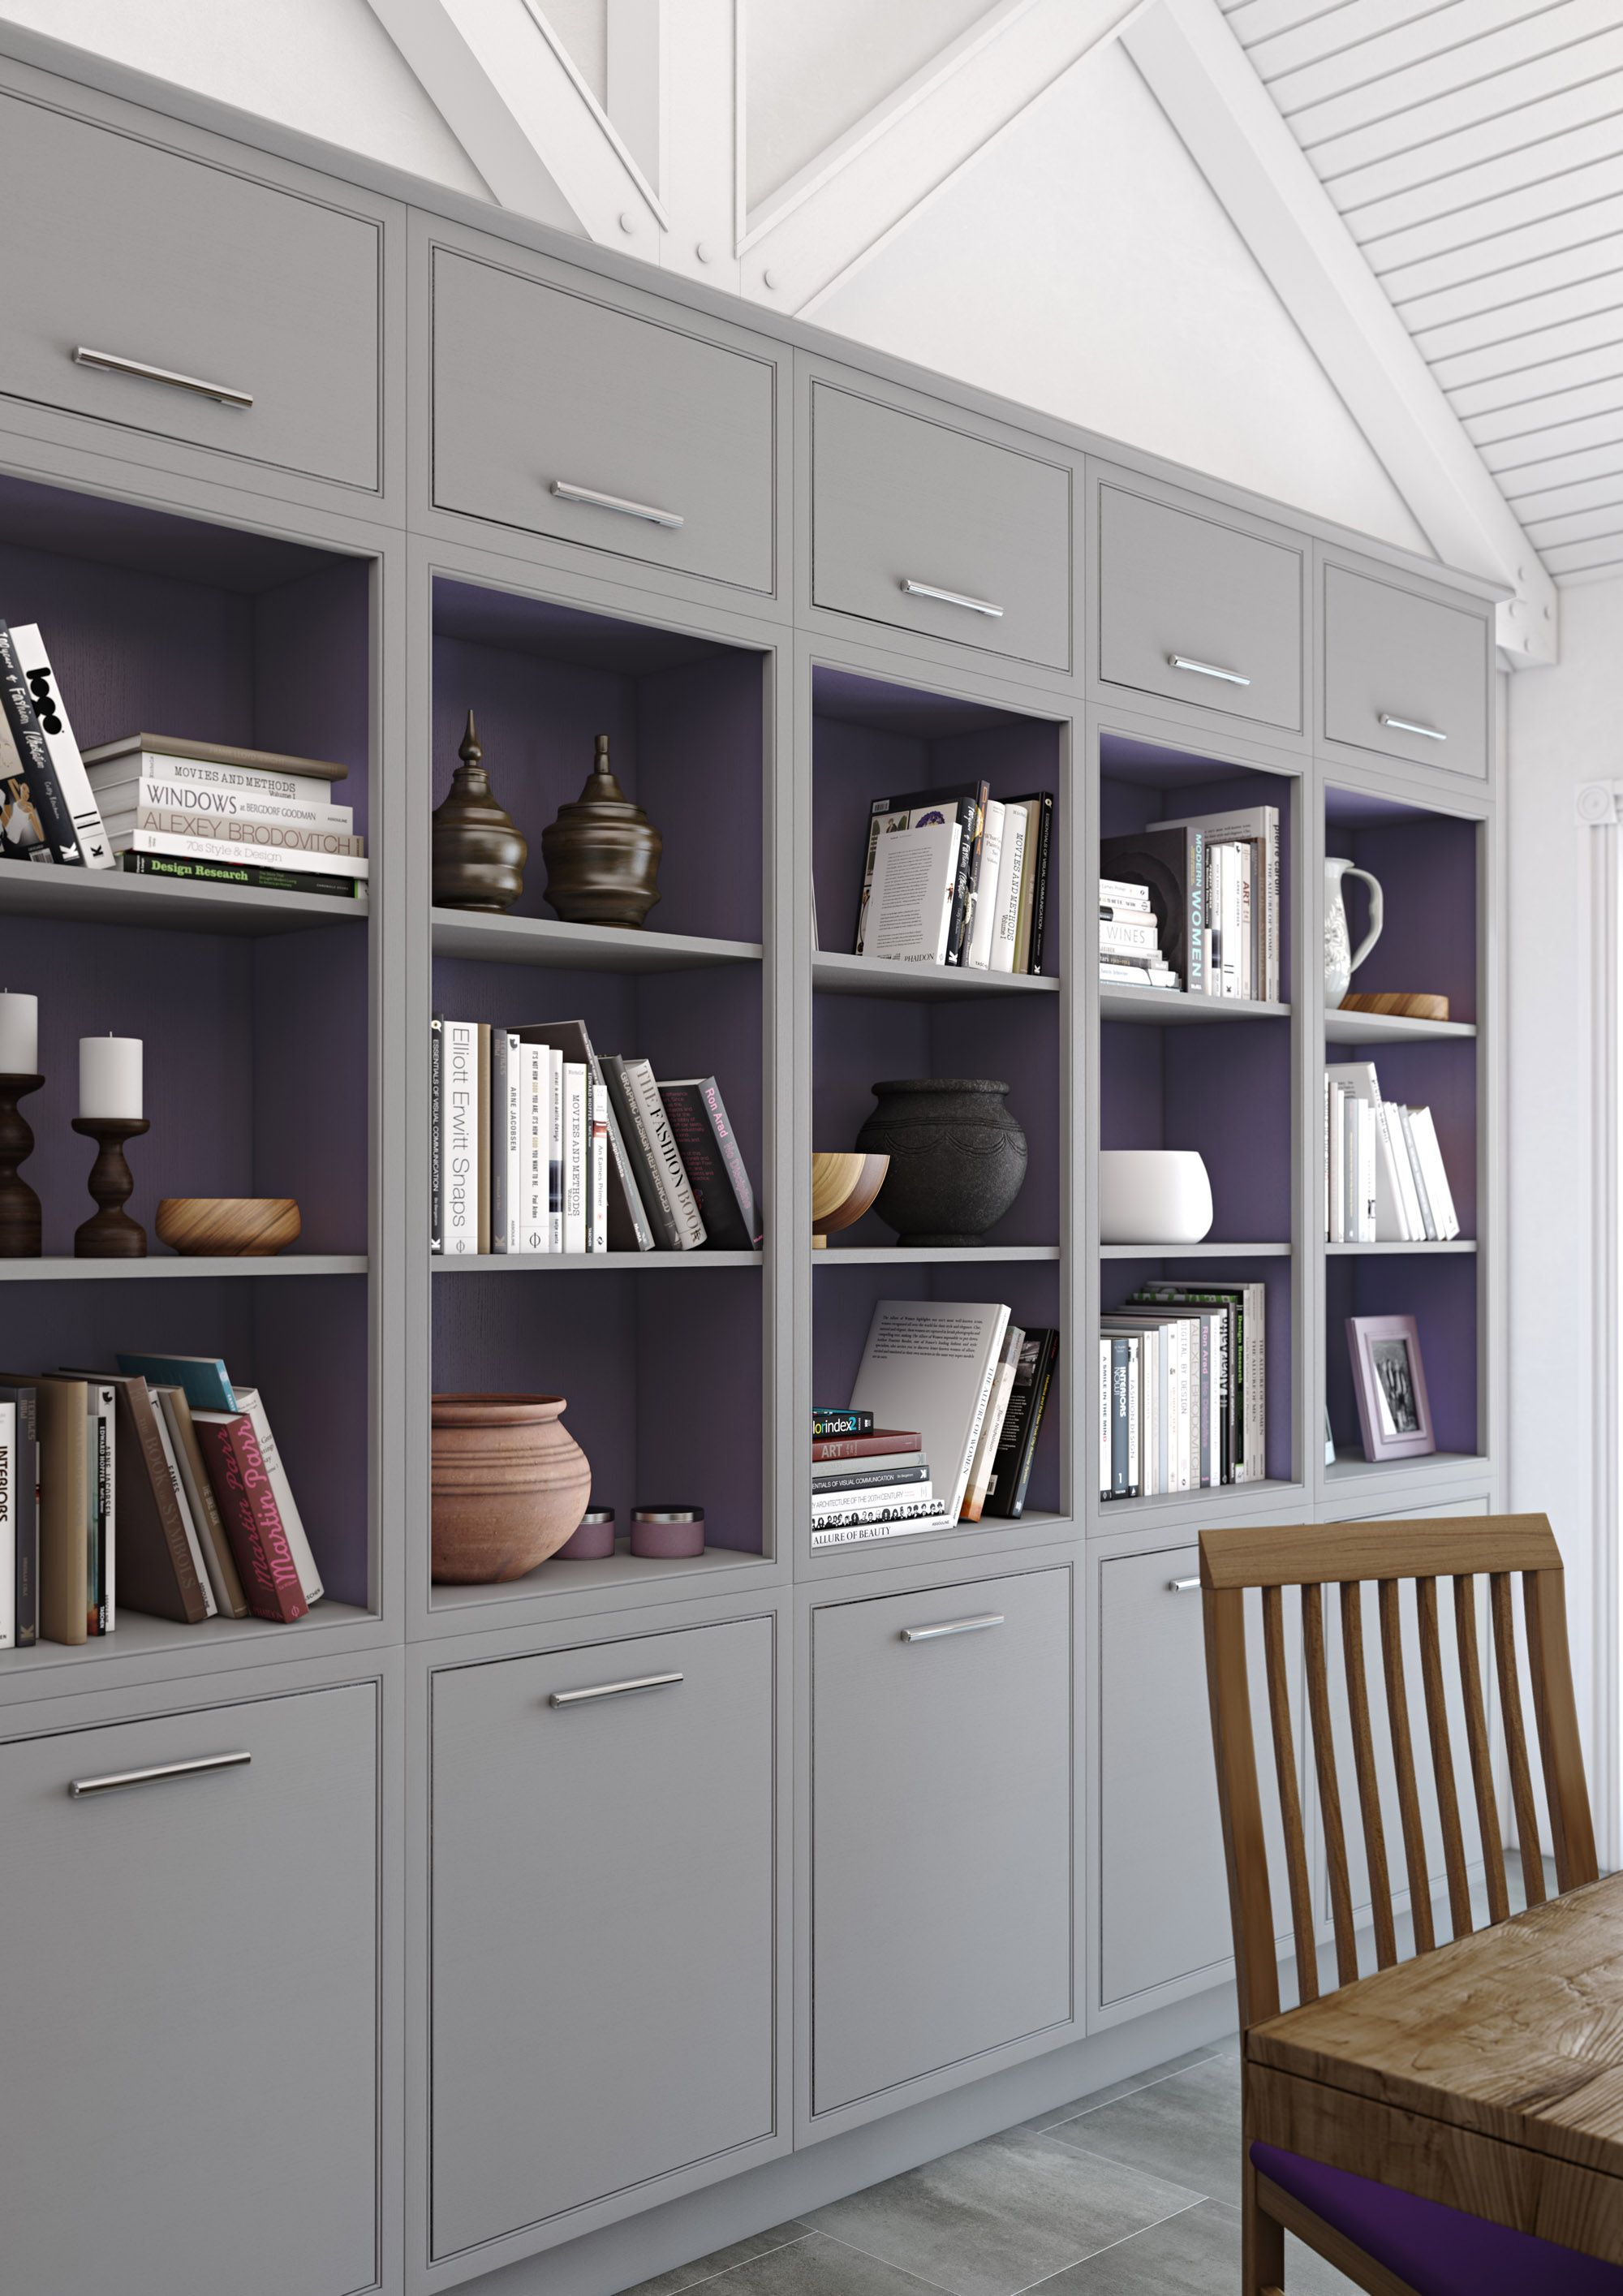 Modern Classic Feature Bookshelf Arrangement  With Slim Wall Units,